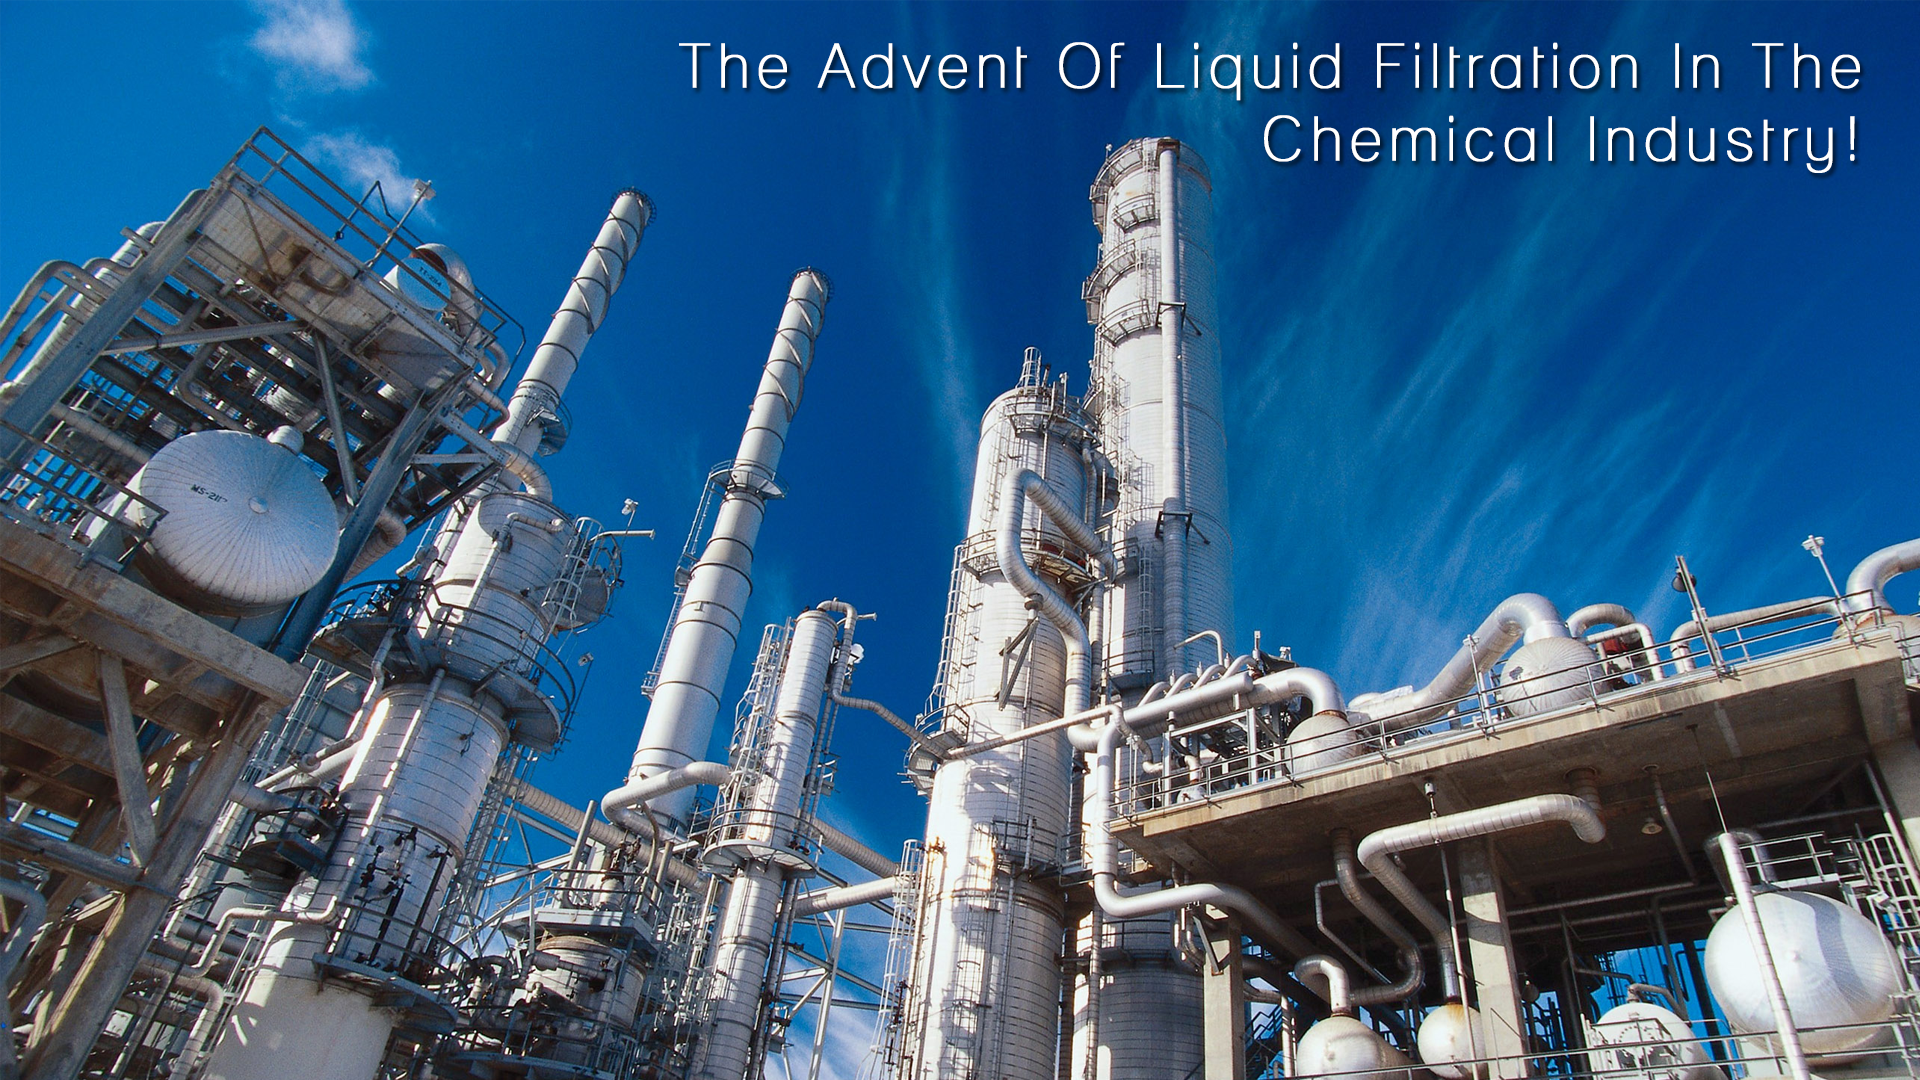 The Advent Of Liquid Filtration In The Chemical Industry